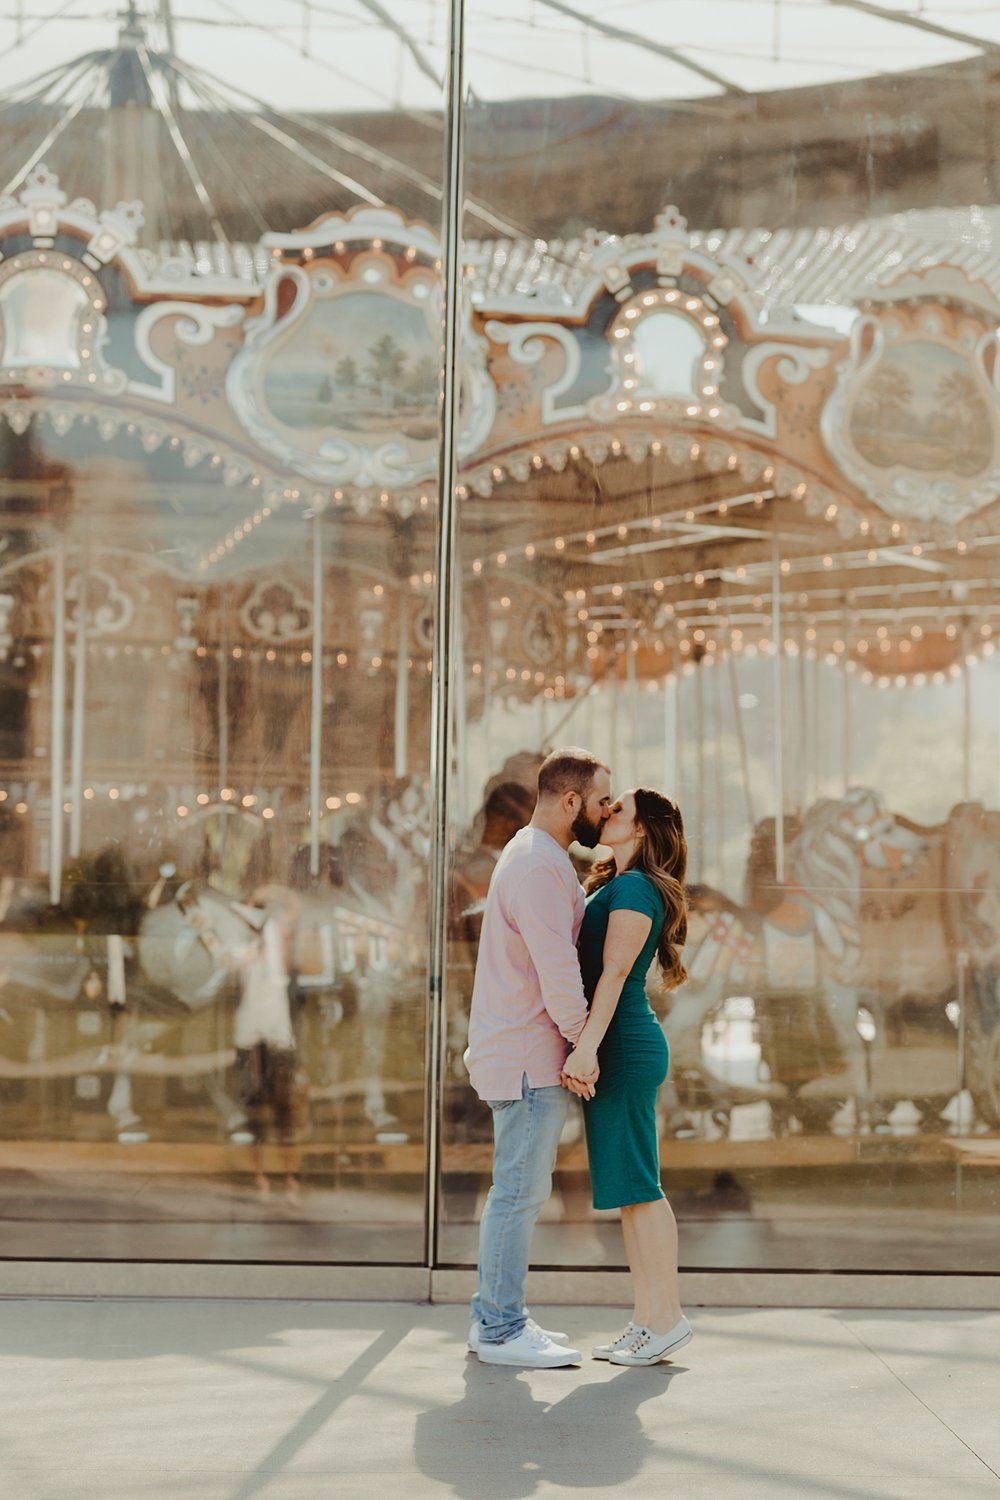 Orange County family photographer. Photo of expecting couple gazing into each other's eyes while standing in front of a carousel during pregnancy announcement photo session with Krystil McDowall